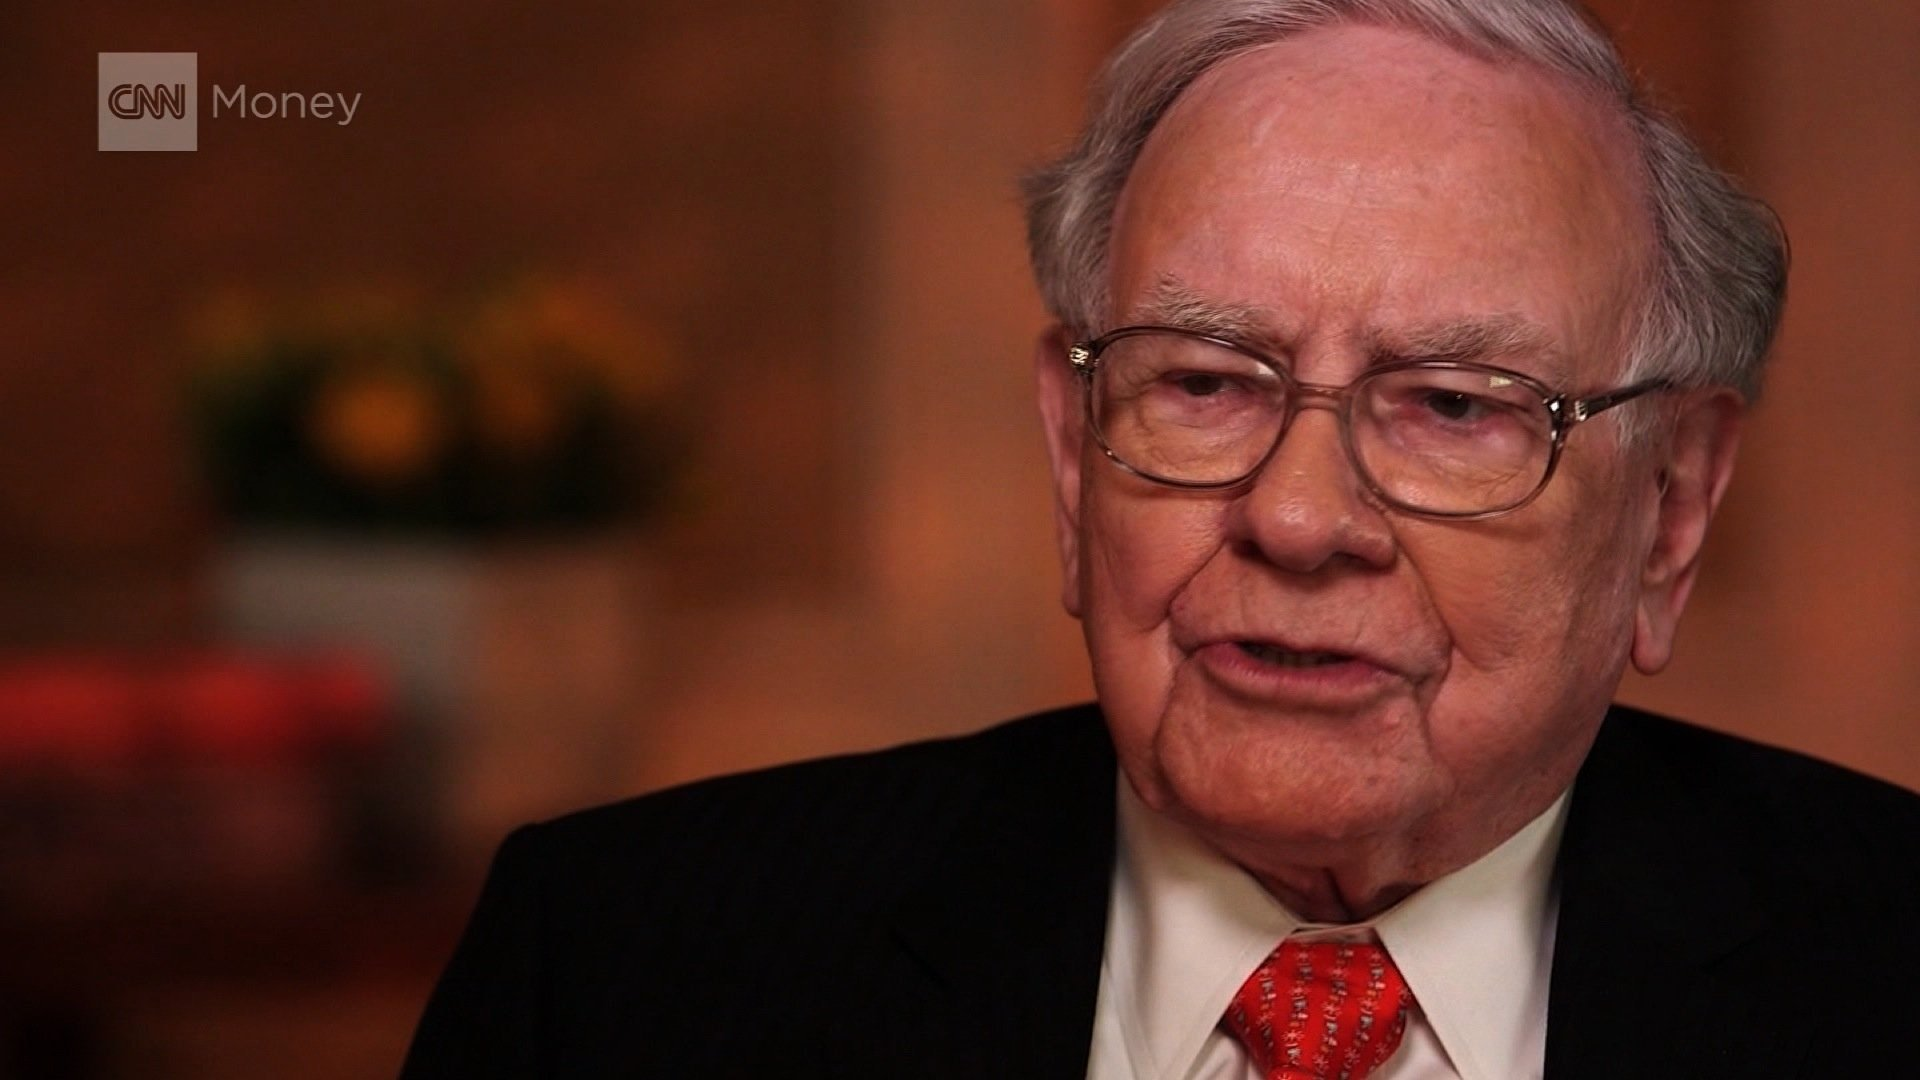 Buffett: Wells Fargo's 'Main Problem Was They Didn't Act'